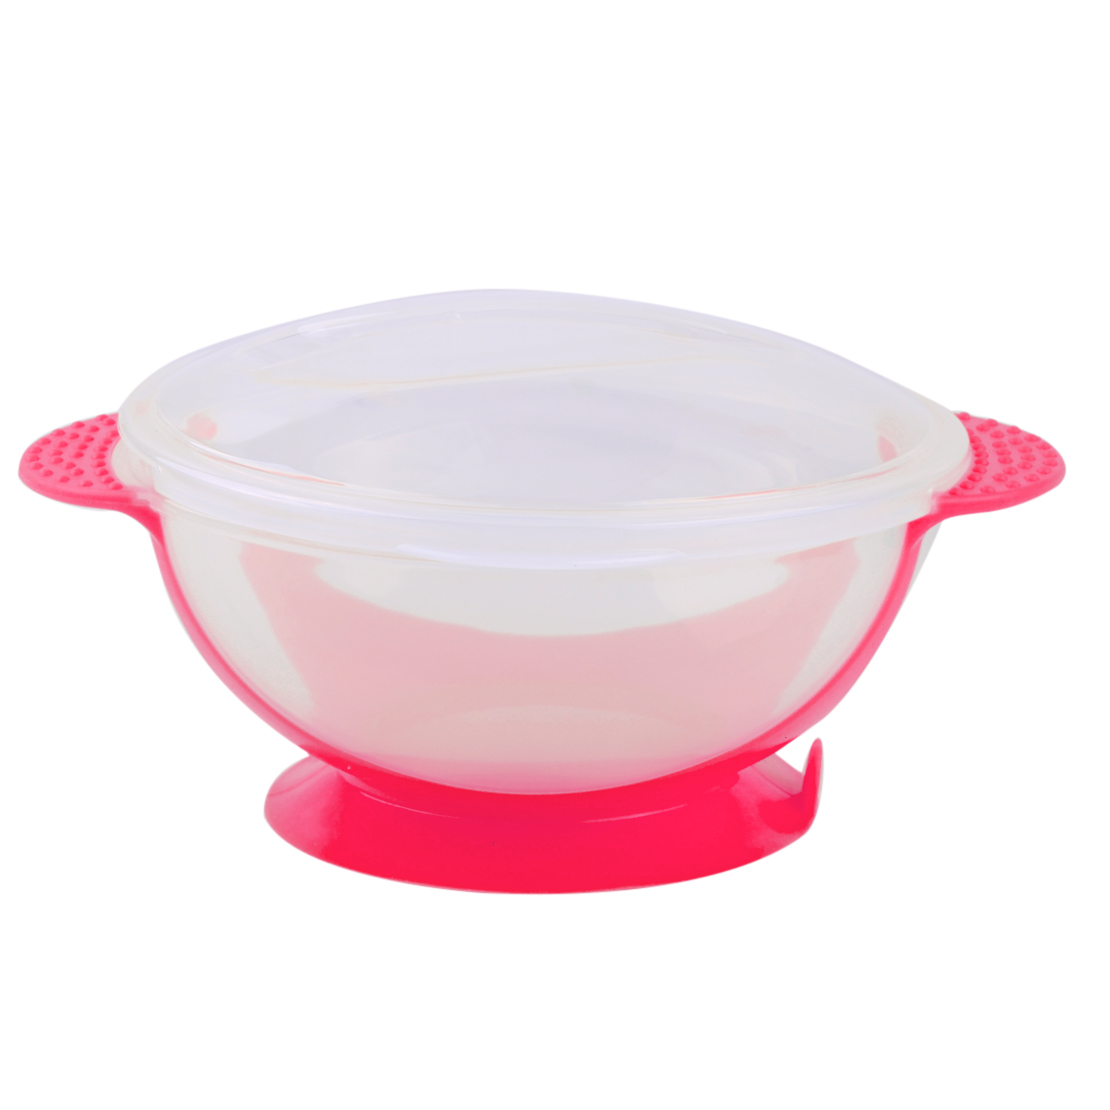 Kids Suction Cup Bowl Slip-resistant Tableware Temperature Sensing Spoon Set UK